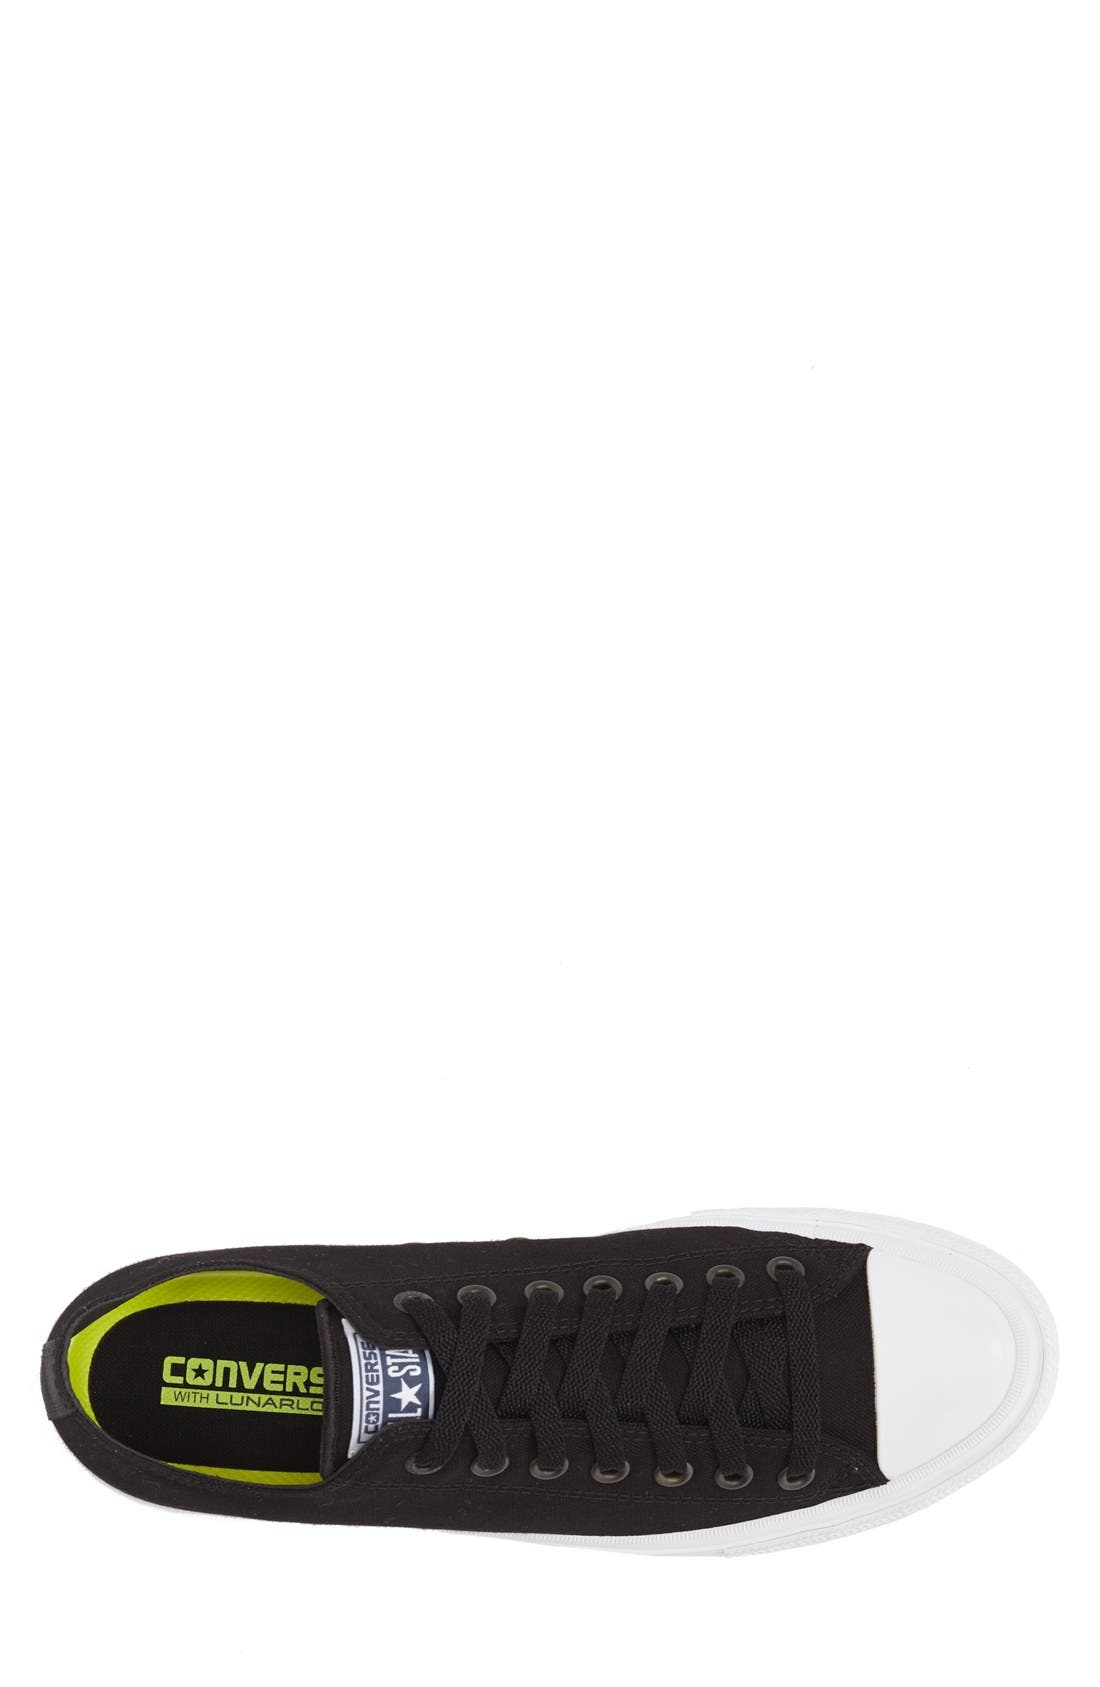 CONVERSE, Chuck Taylor<sup>®</sup> All Star<sup>®</sup> II 'Ox' Canvas Sneaker, Alternate thumbnail 3, color, 001